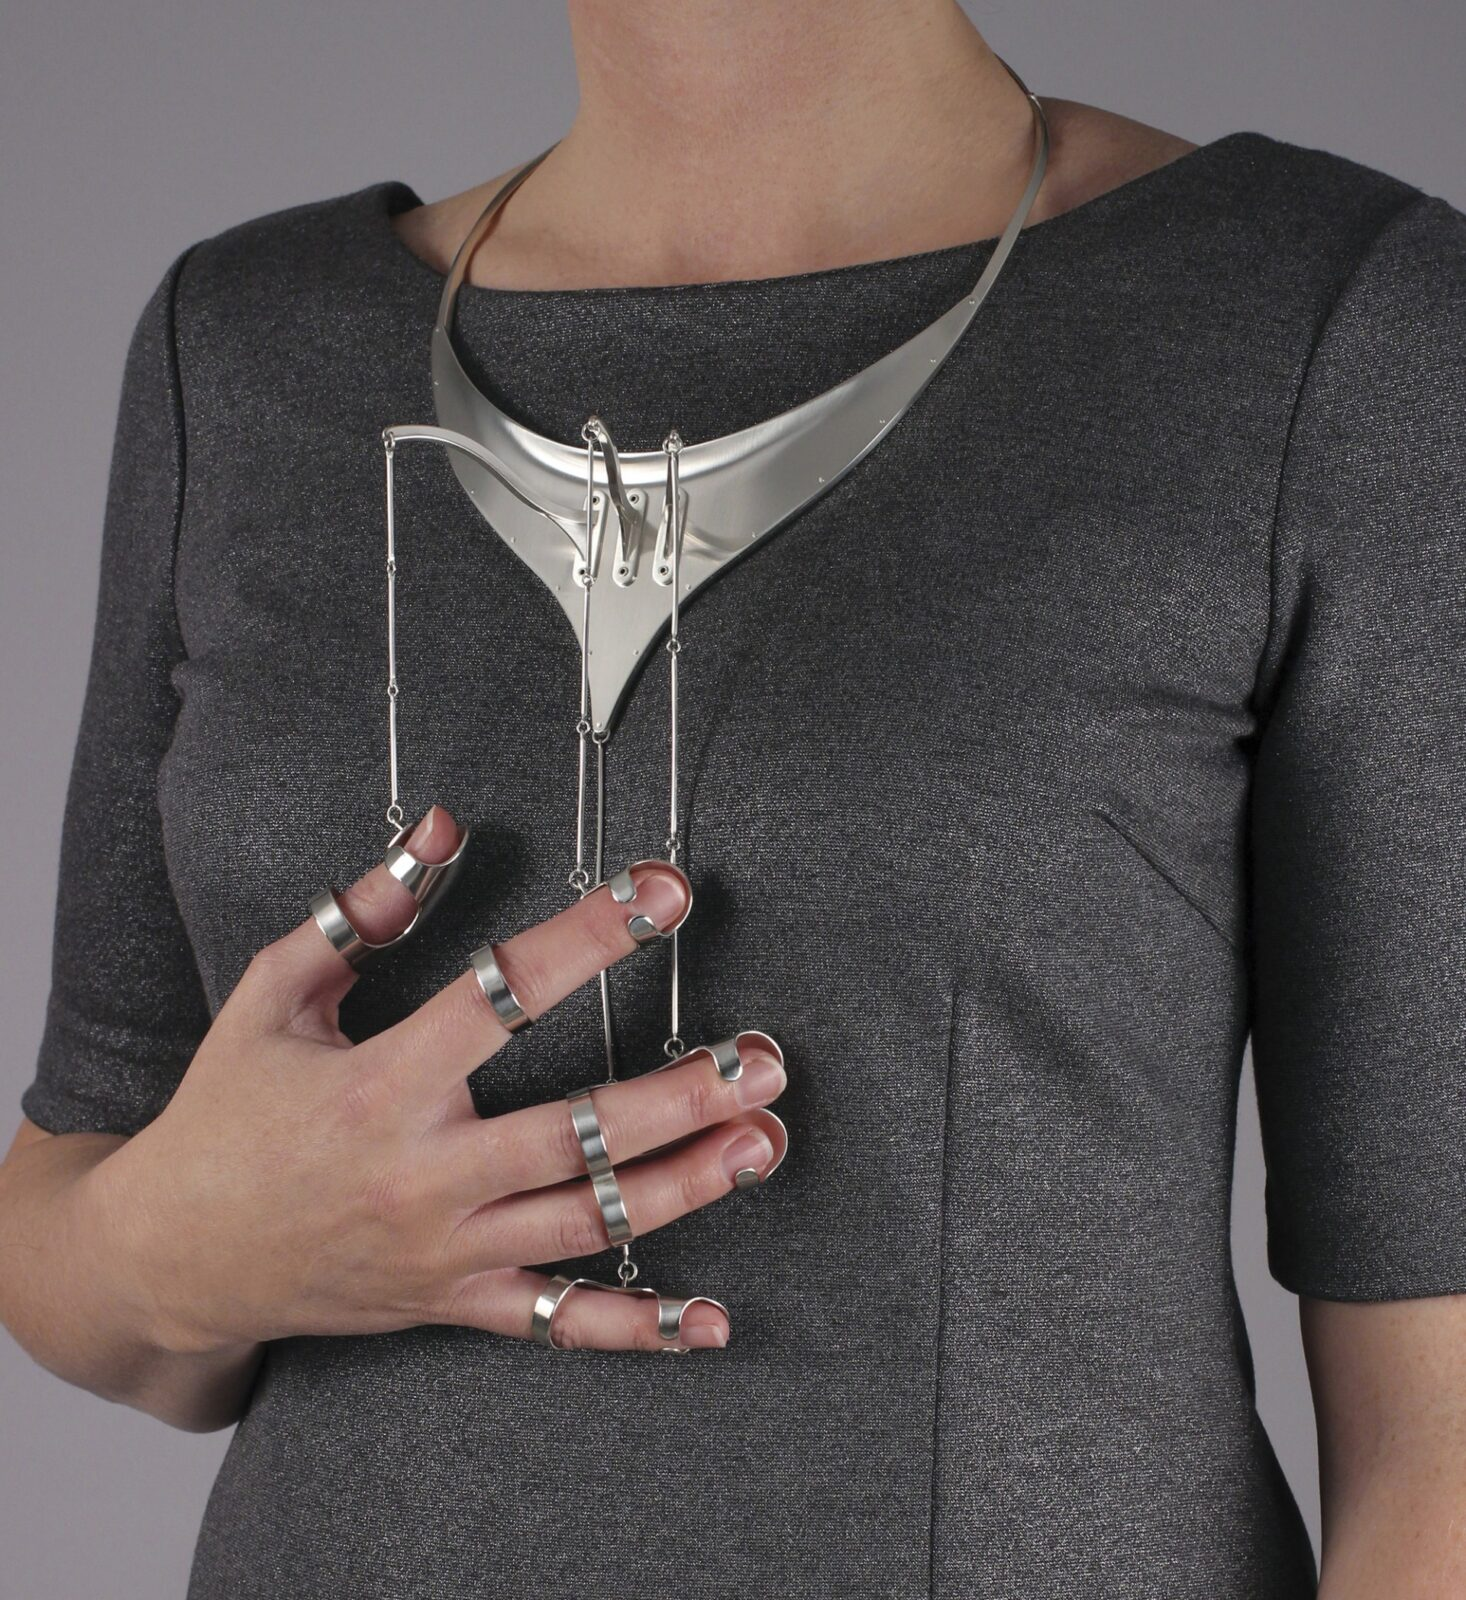 Jennifer Crupi's Unconventional Jewelry Highlights Gesture As Ornament